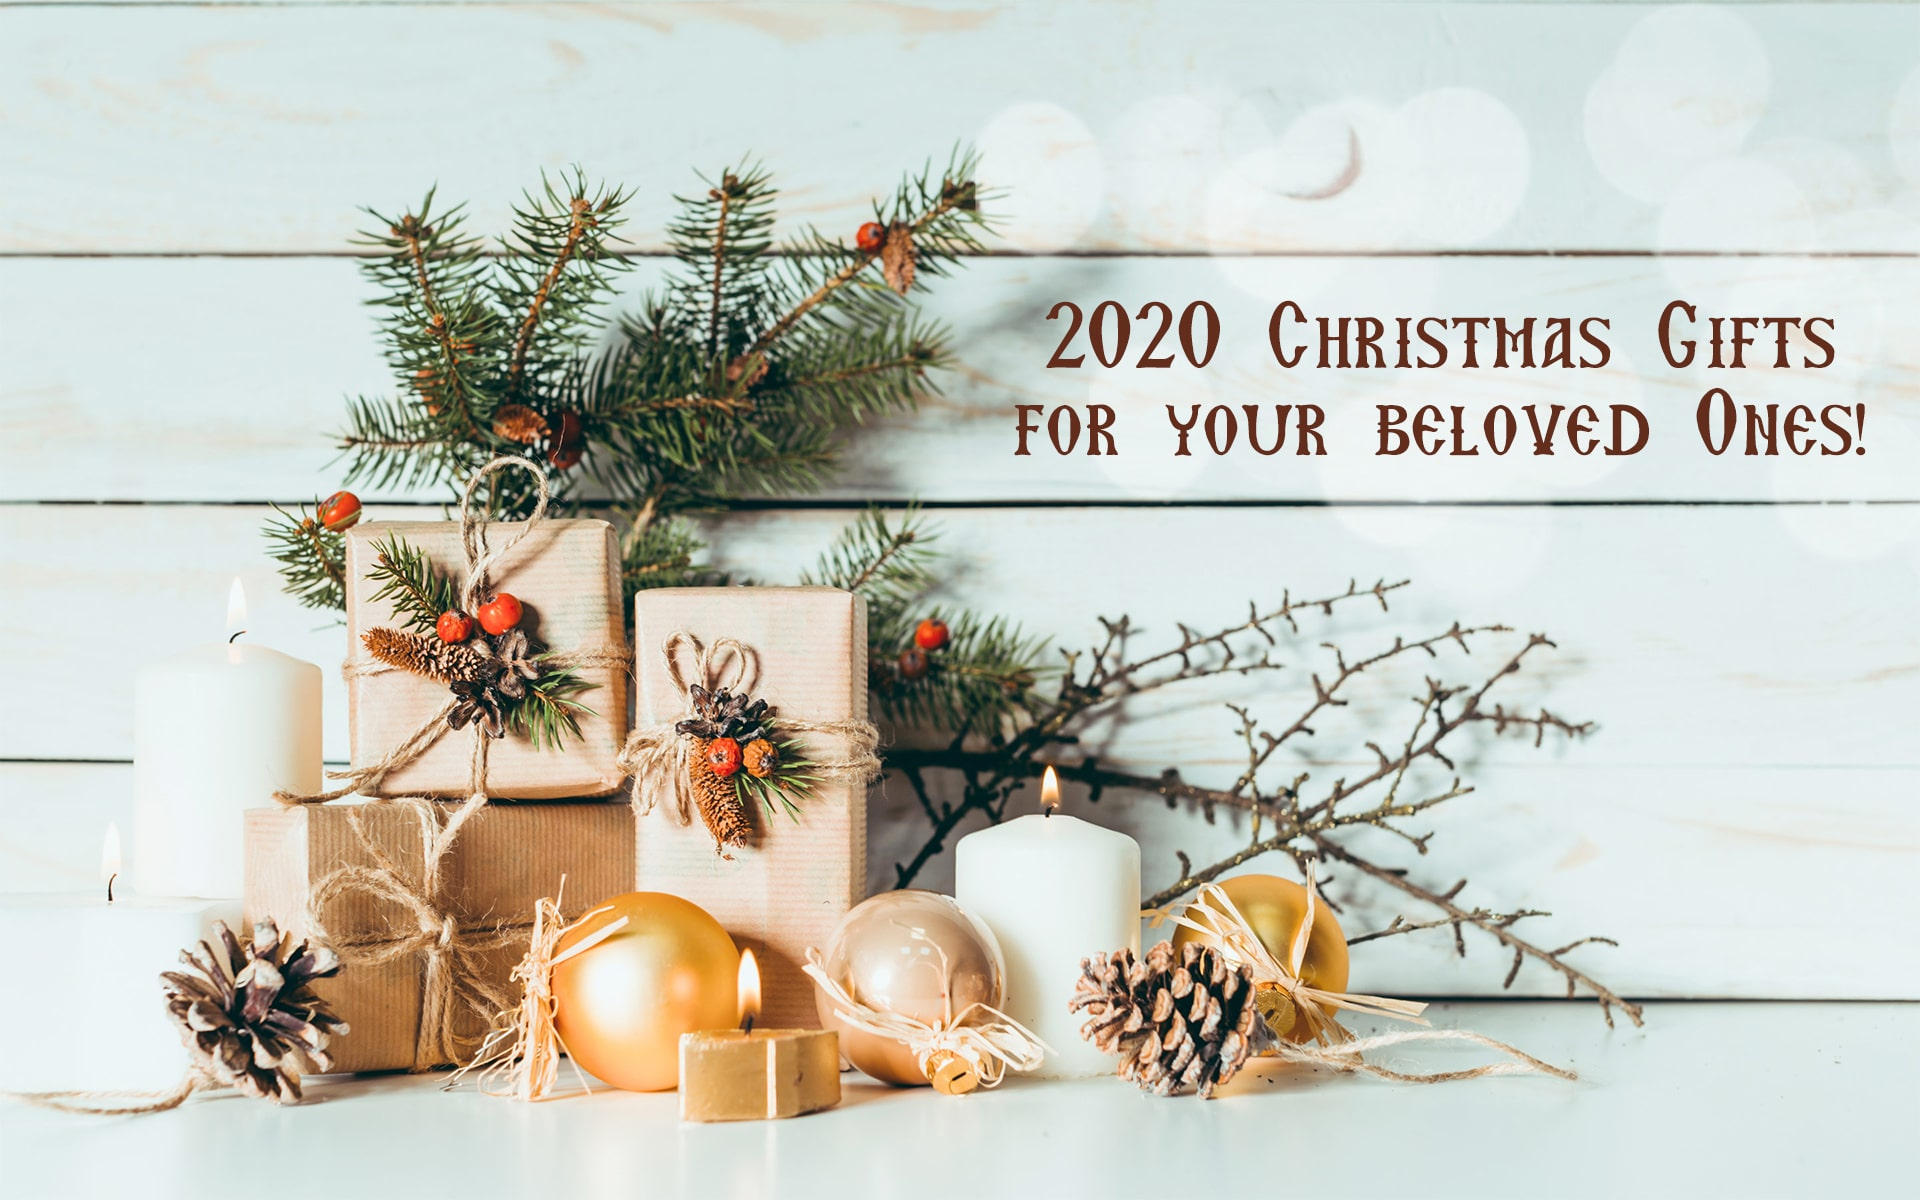 2020 Christmas Gifts for your beloved Ones!